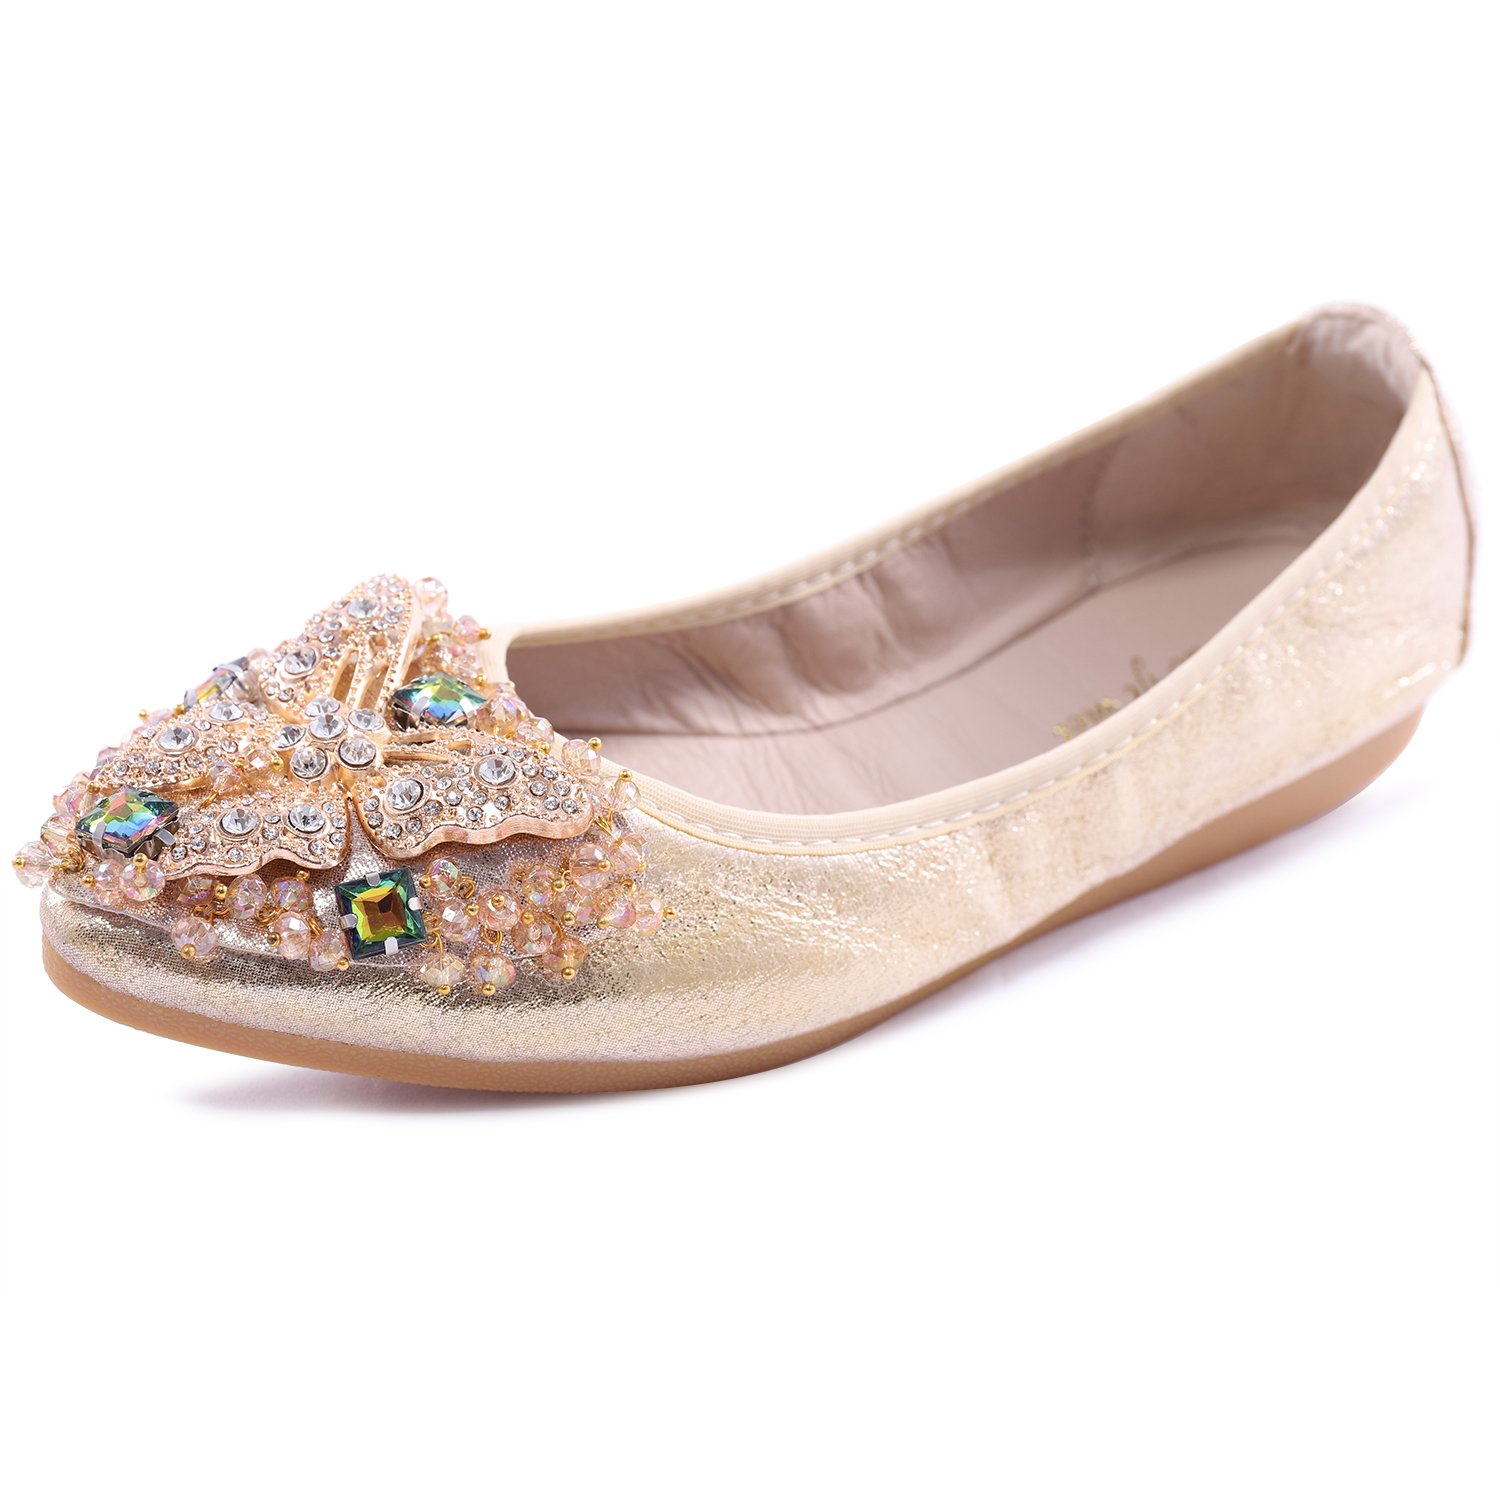 Cattle Shop Womens Foldable Soft Ballet Flats Bling Rhinestone Comfort Slip On Loafers Walking Shoes